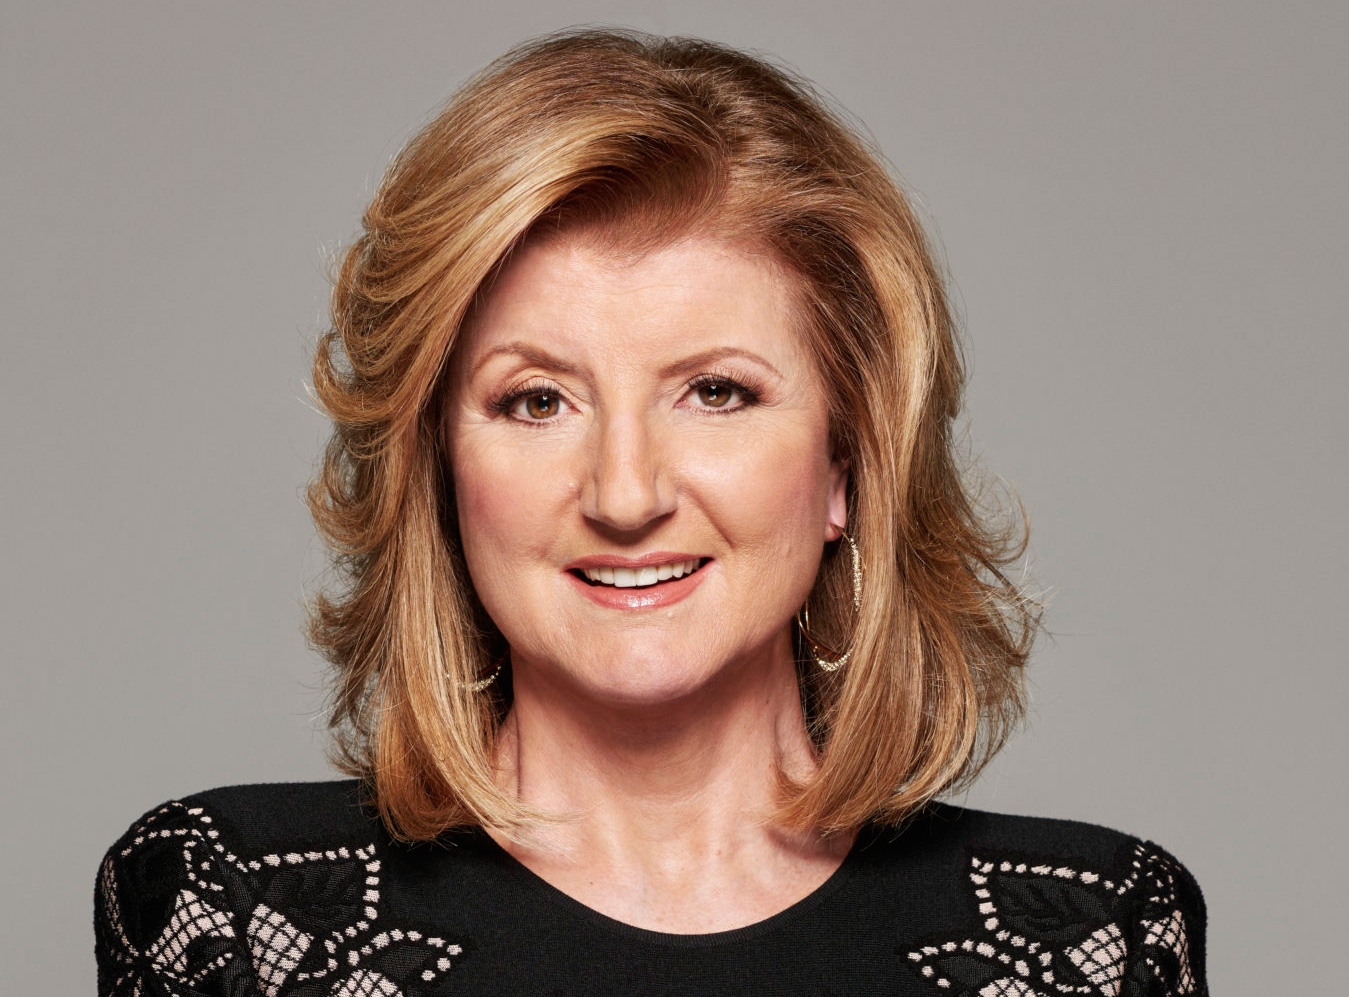 """I Love Waking Up Without an Alarm"":  Arianna Huffington's Morning Routine"